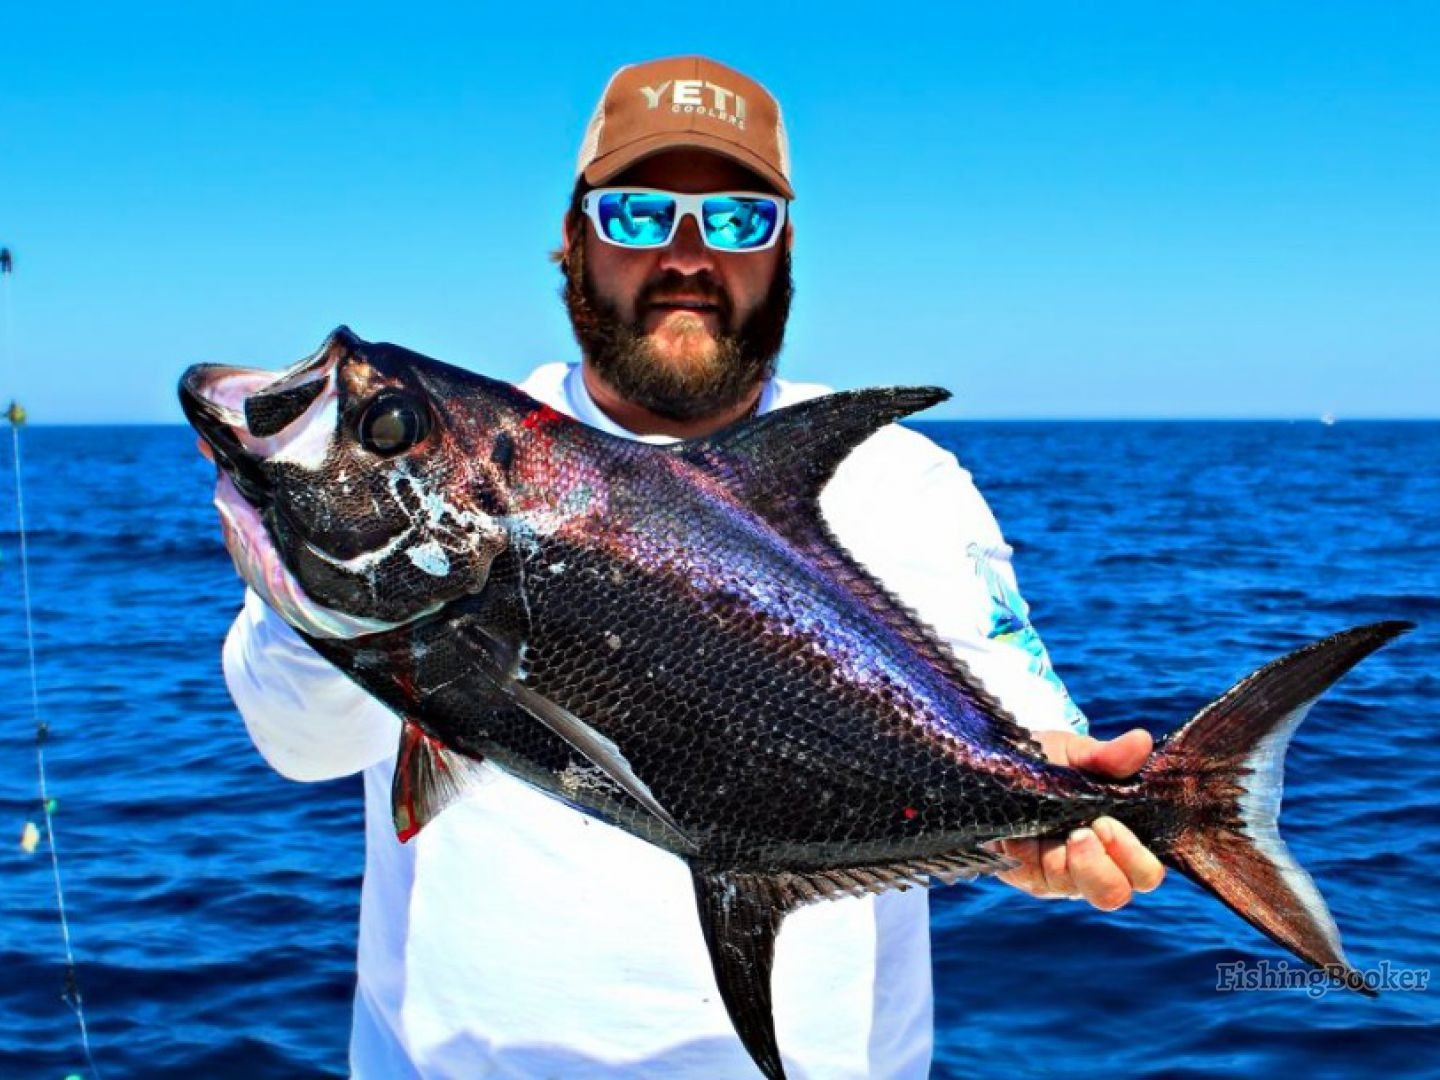 Sword a crazy fishing charters panama city beach florida for Panama city beach charter fishing